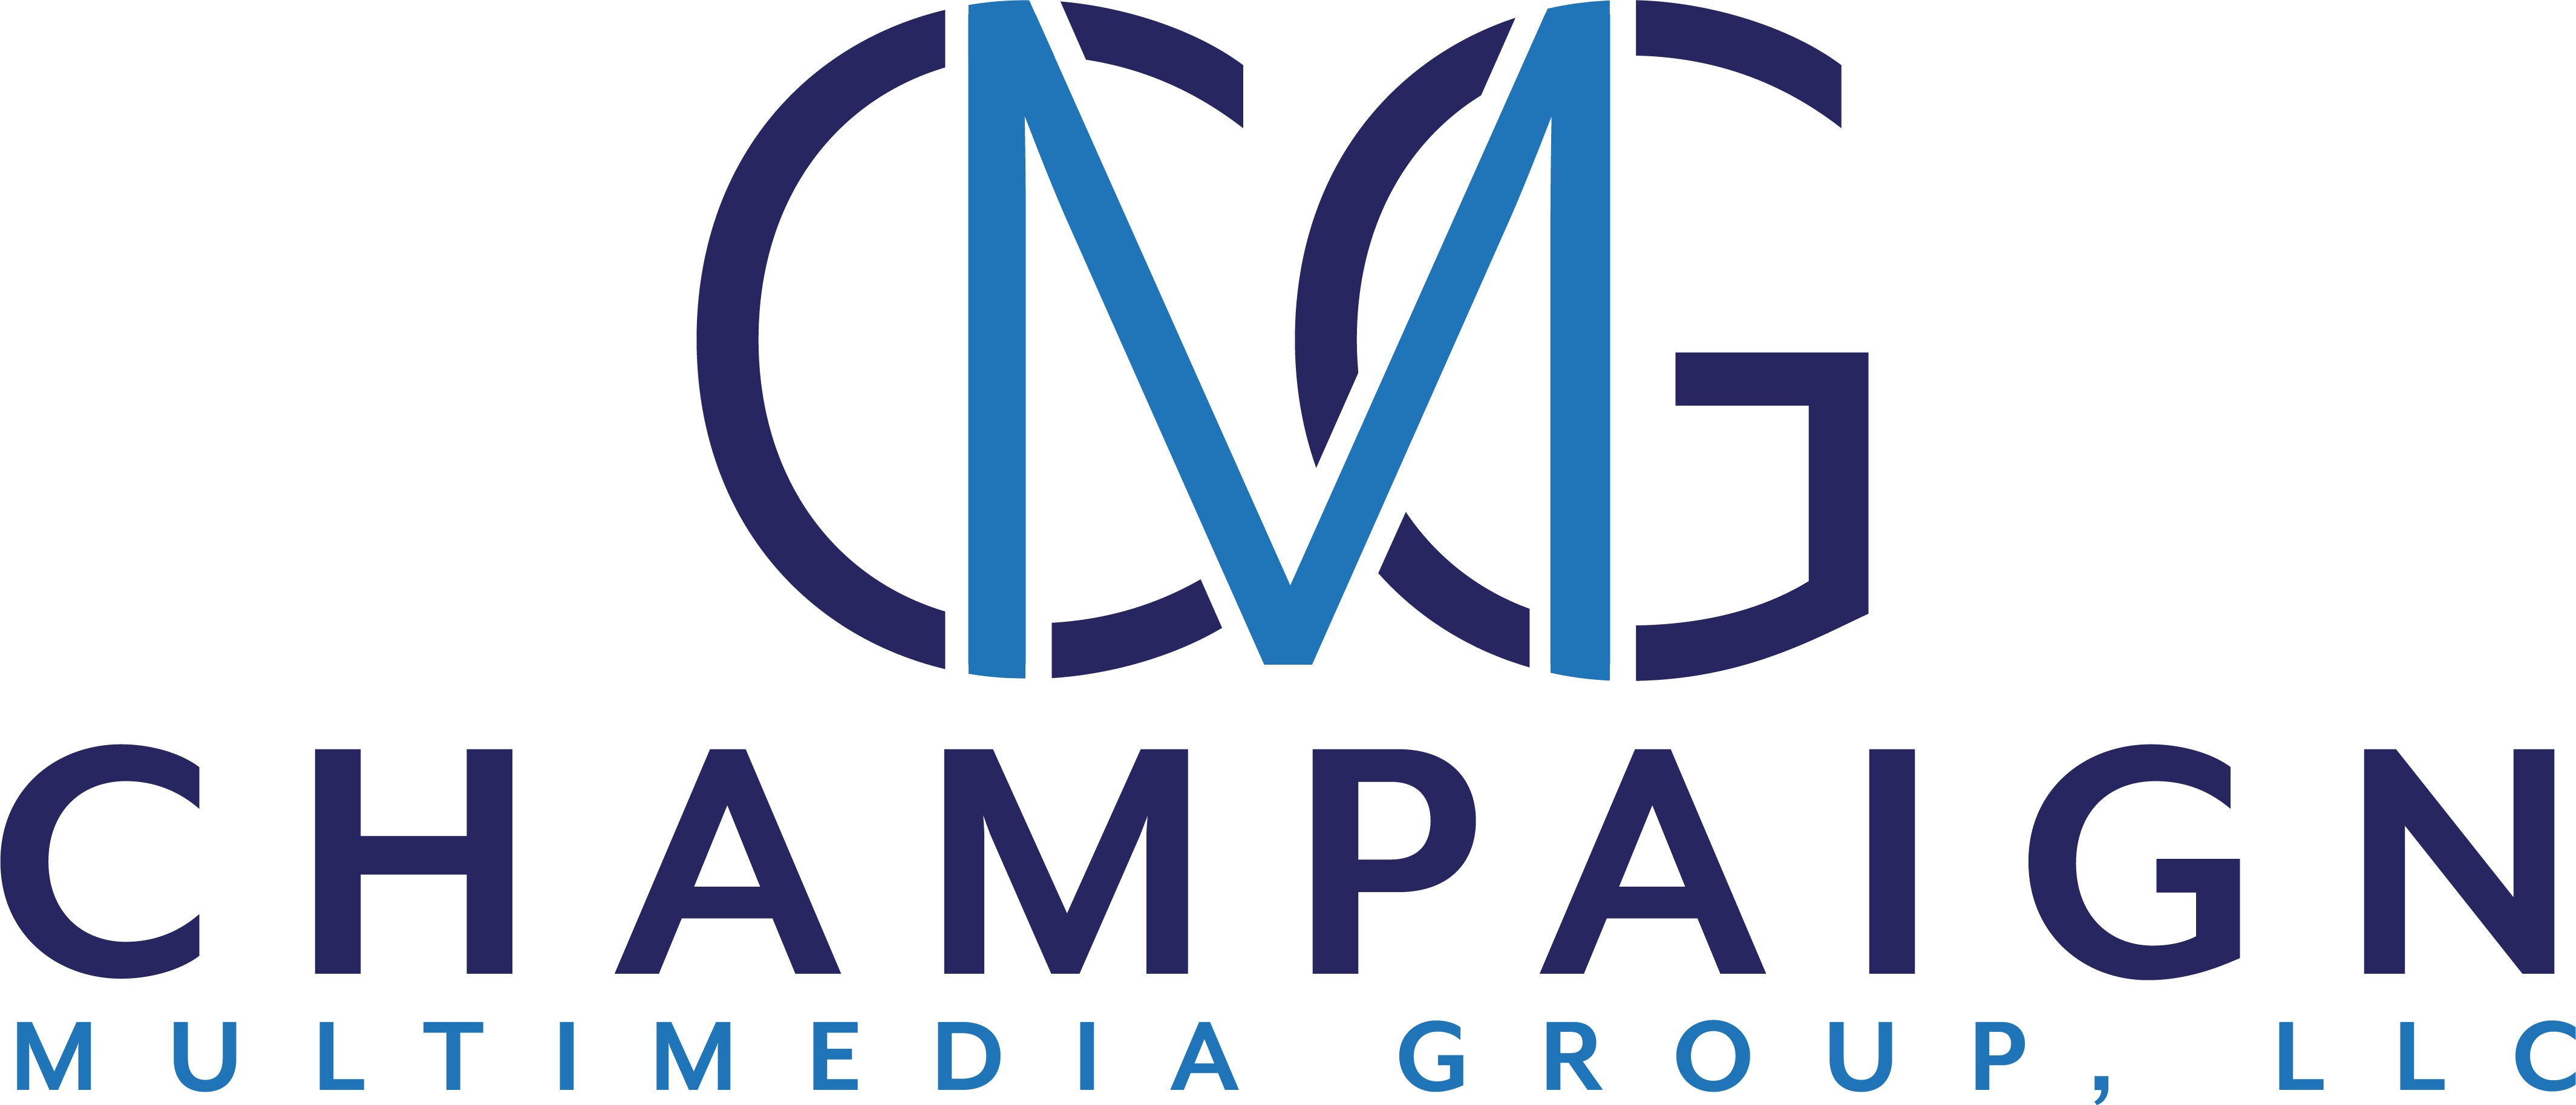 Champaign Multimedia Group